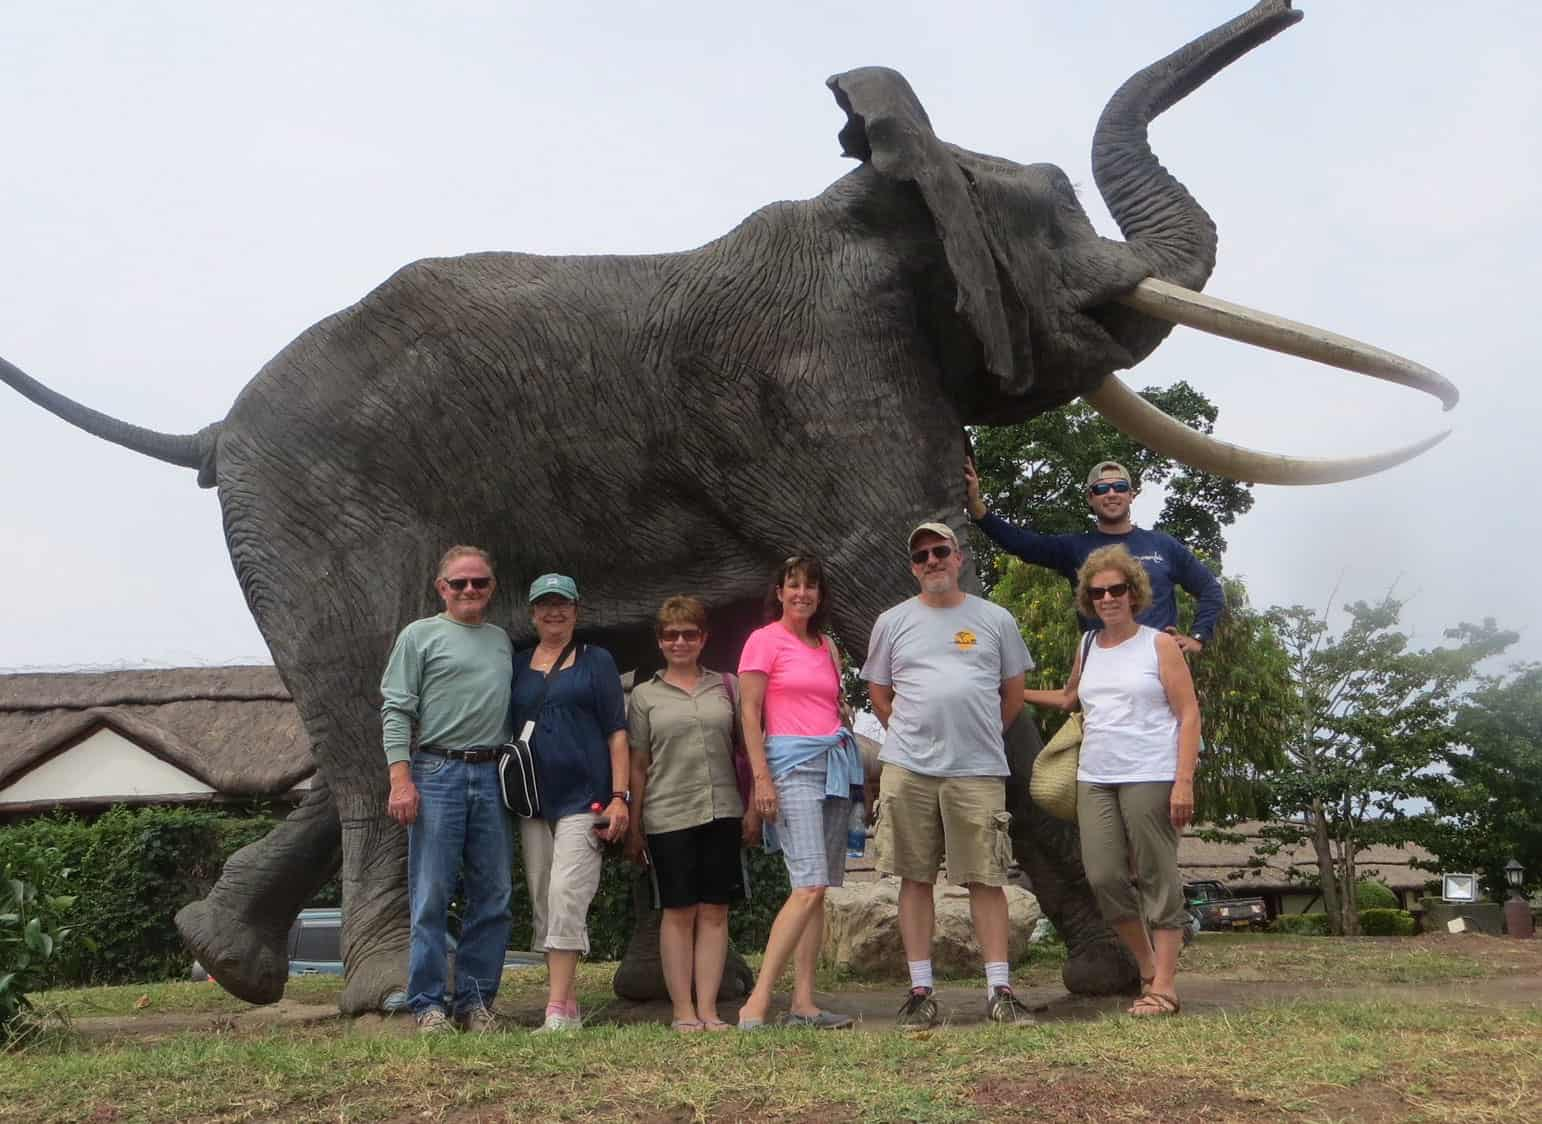 adult trip with elephant statue